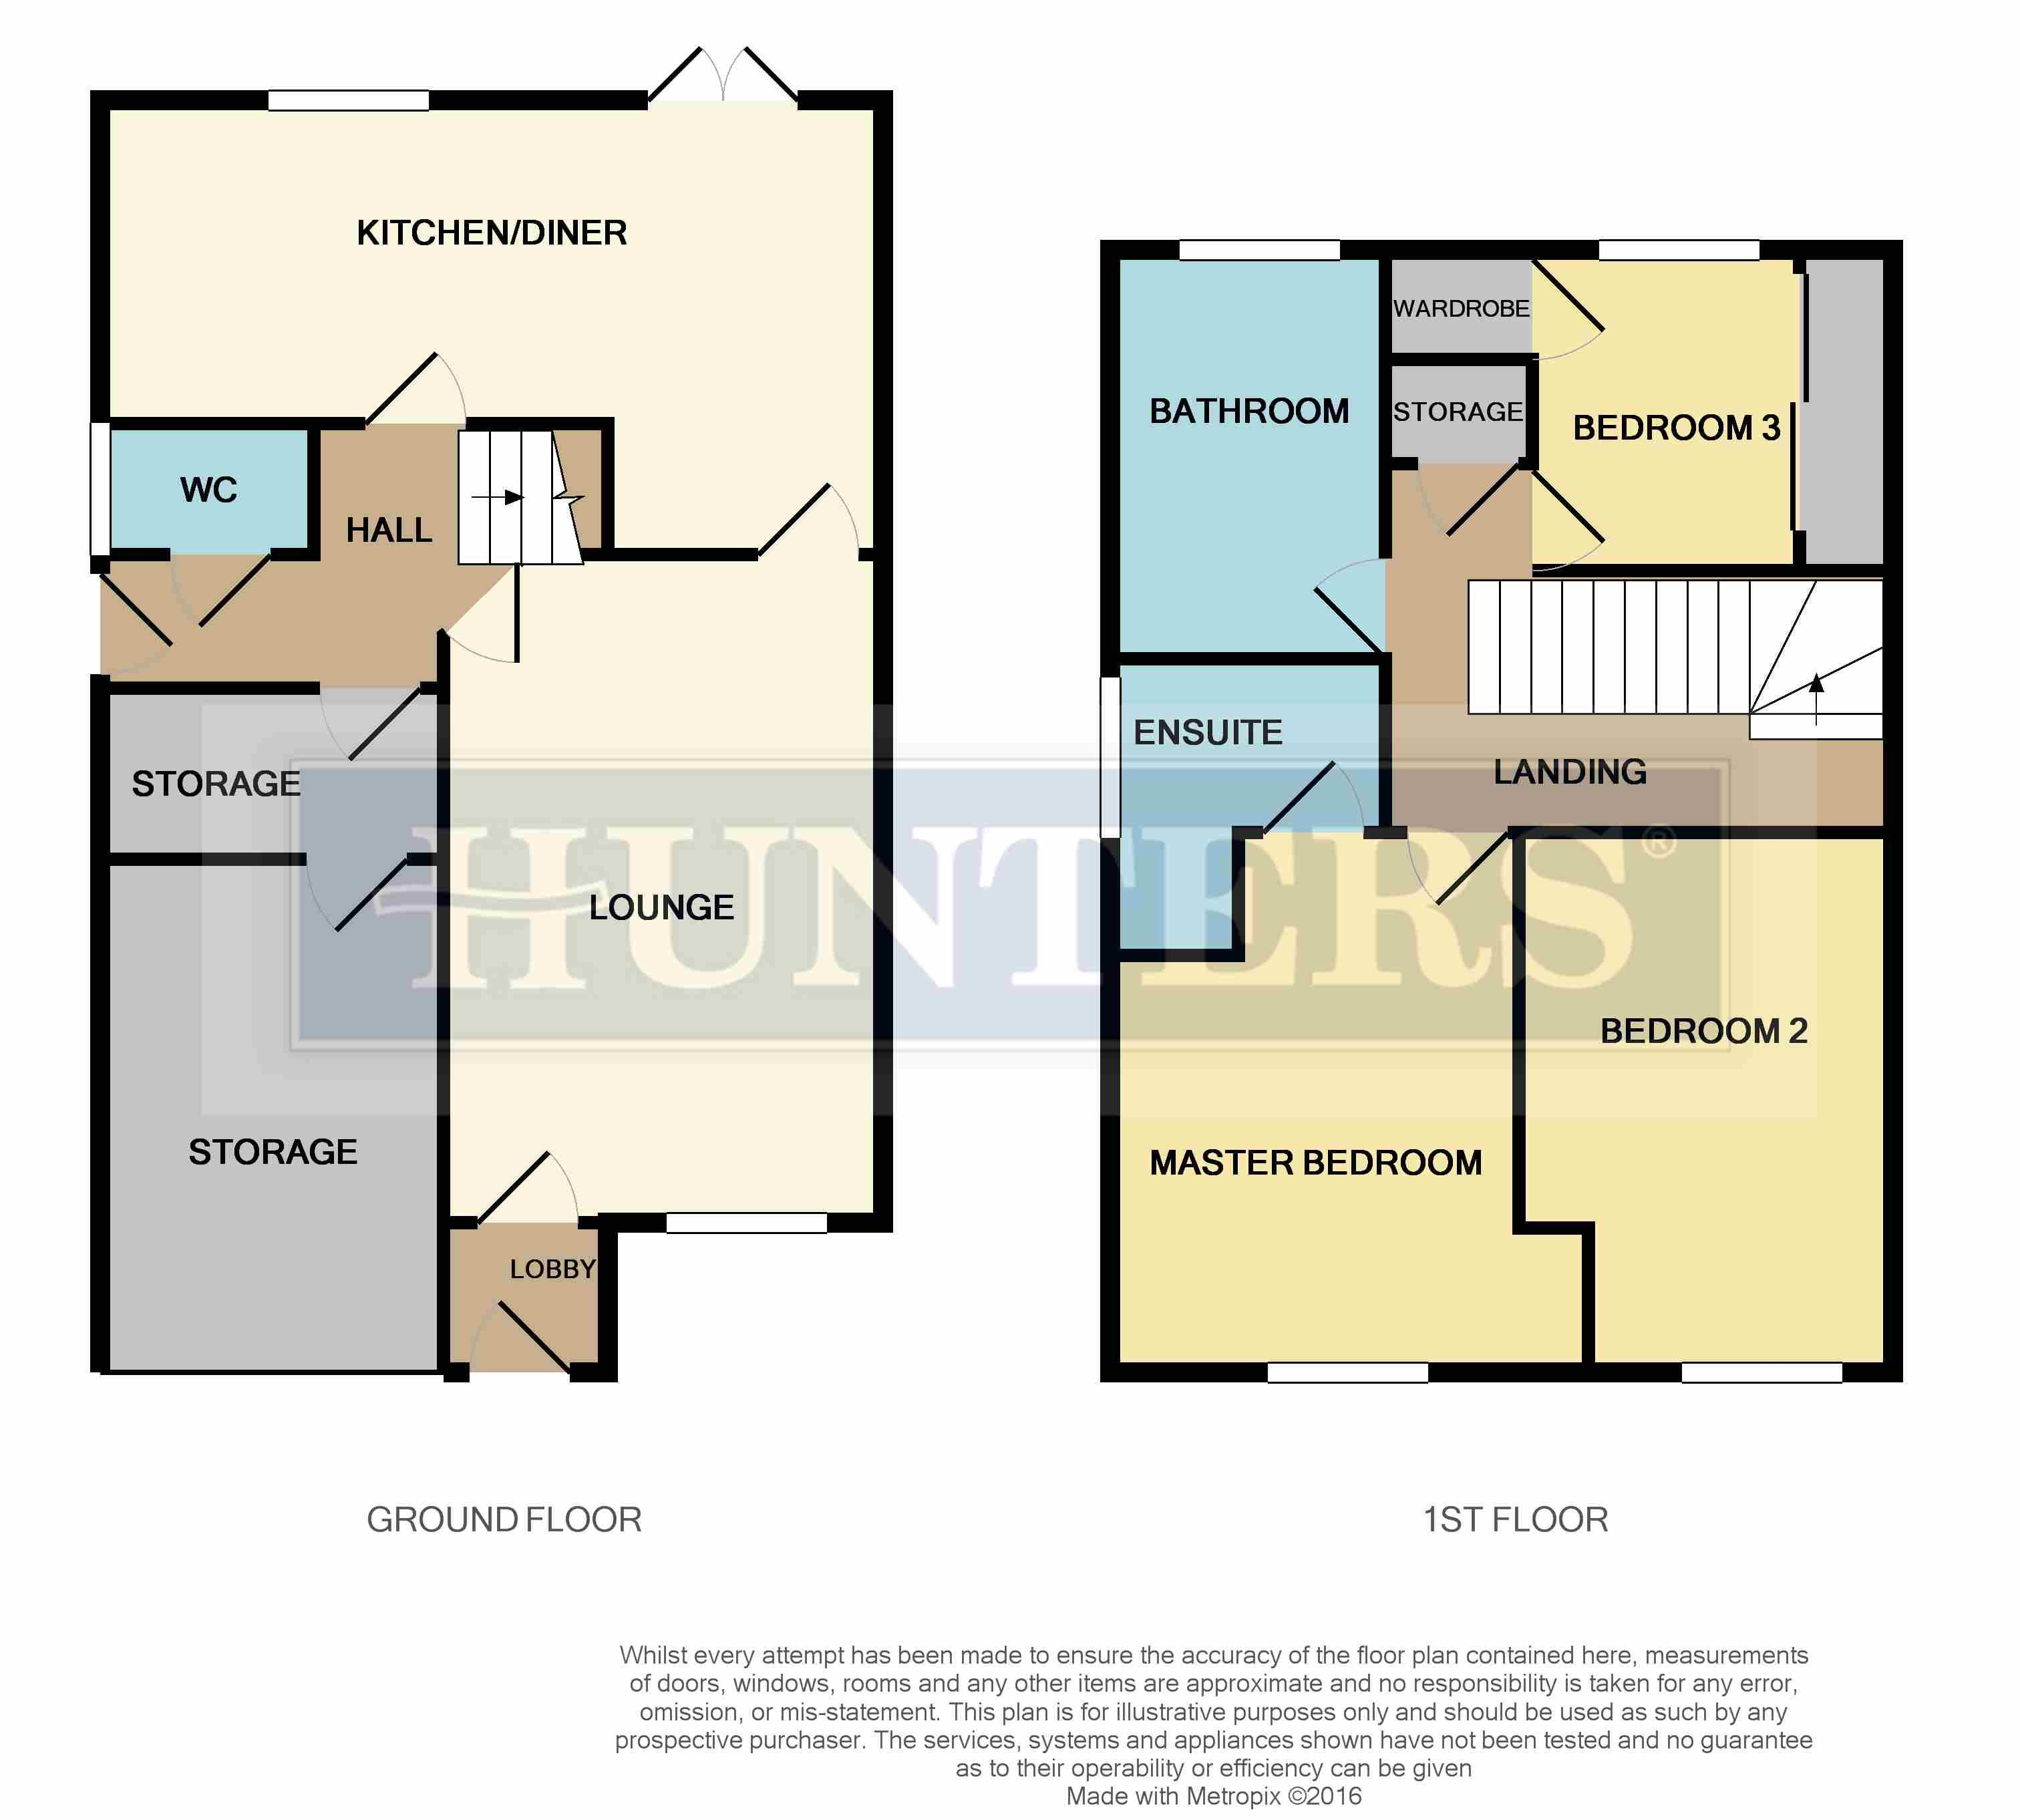 3 bed detached house for sale in hawkstone marton in